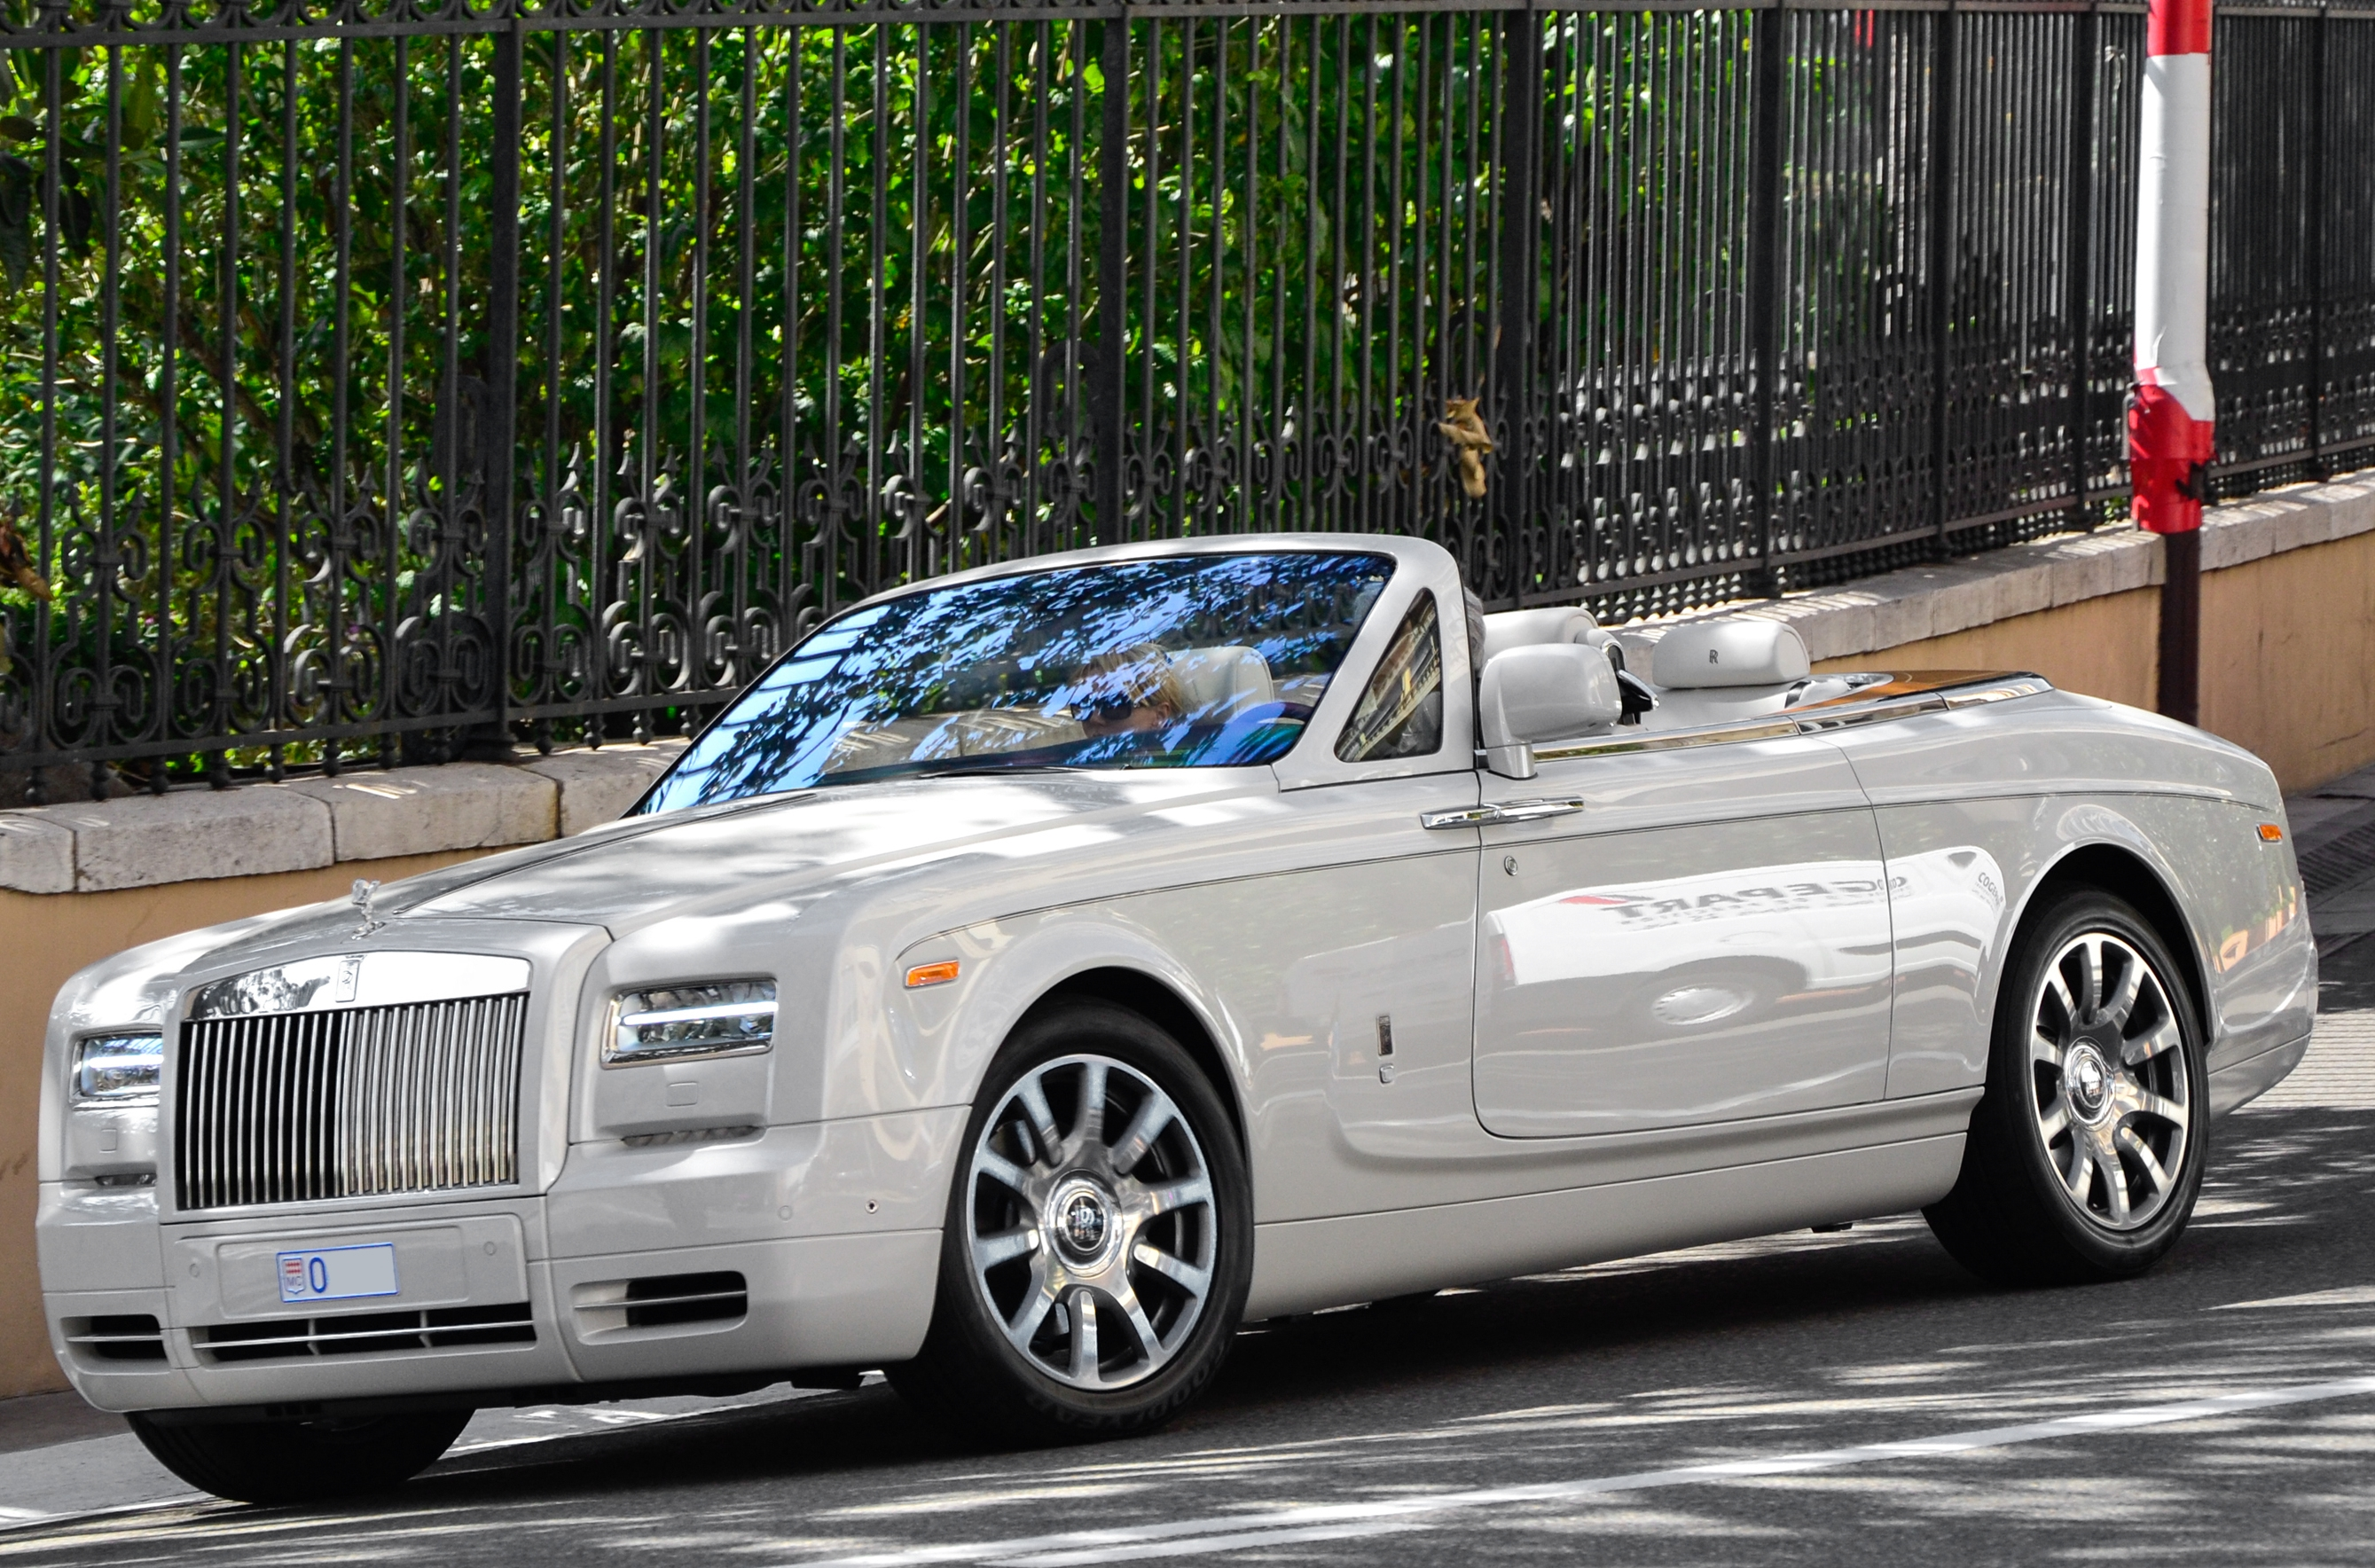 2019 Rolls Royce Phantom photo - 4